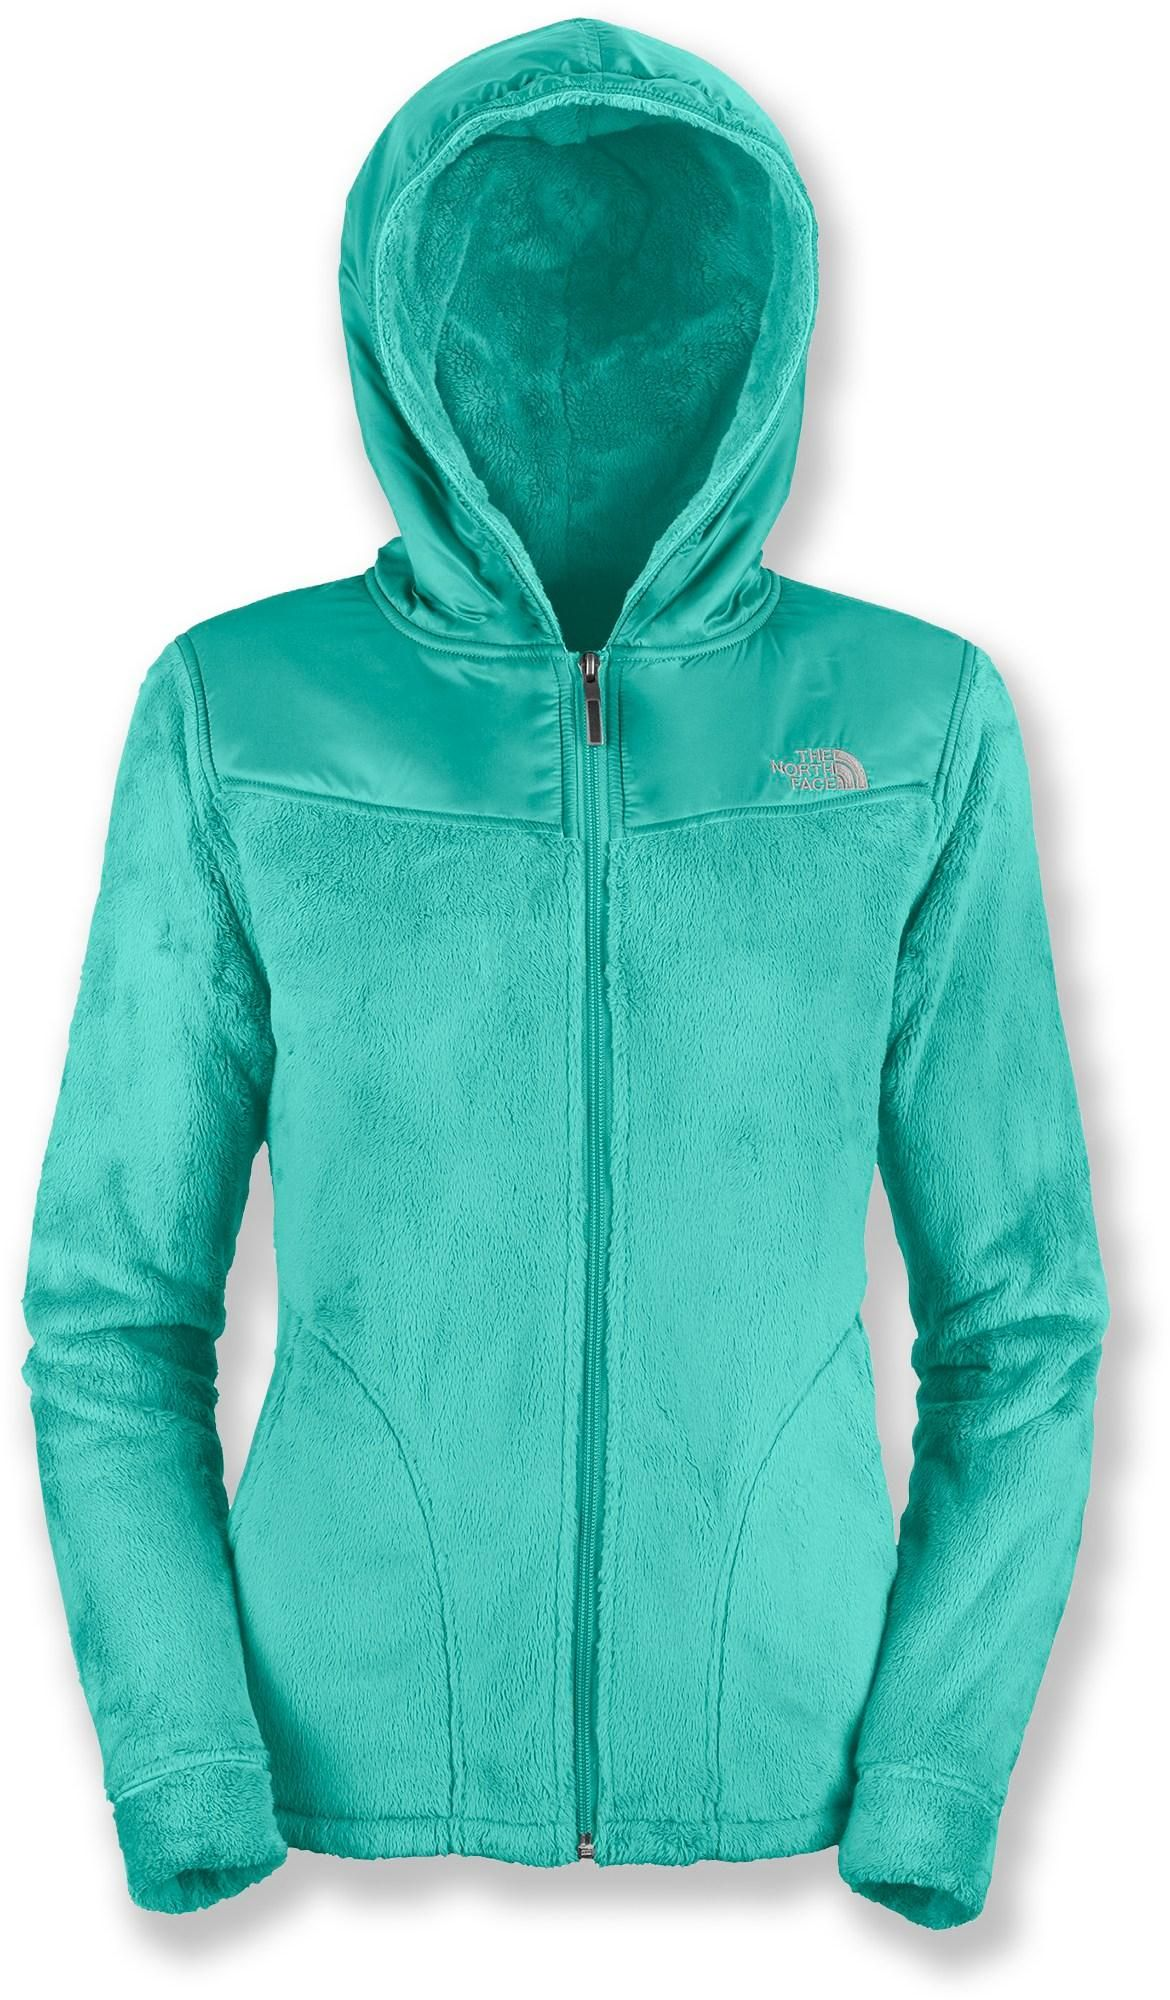 The North Face Oso Fleece Jacket Is A Just Right Layer For Fall Fleece Jacket Womens North Face Jacket North Face Oso Hoodie [ 2000 x 1170 Pixel ]